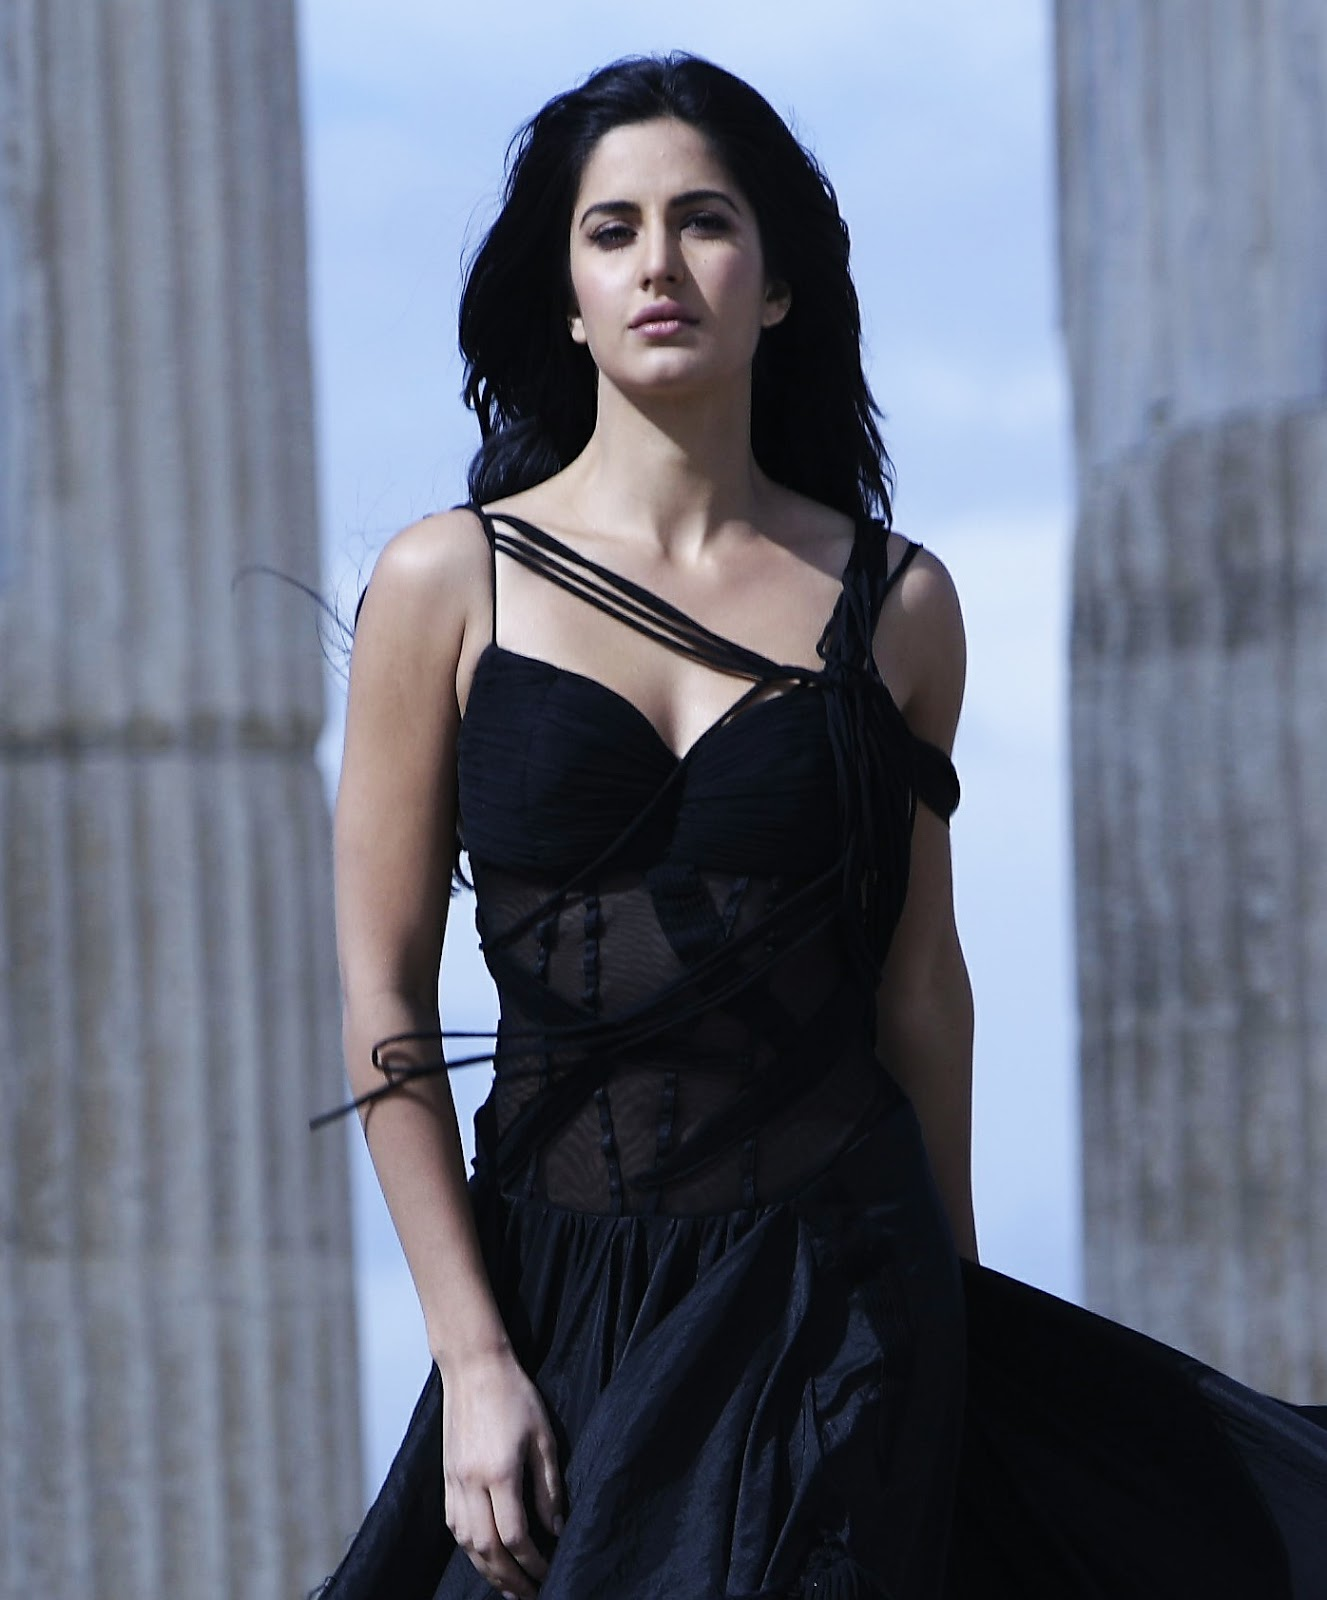 Katrina Kaif Hot Photo Gallery - Filmnstars-4842